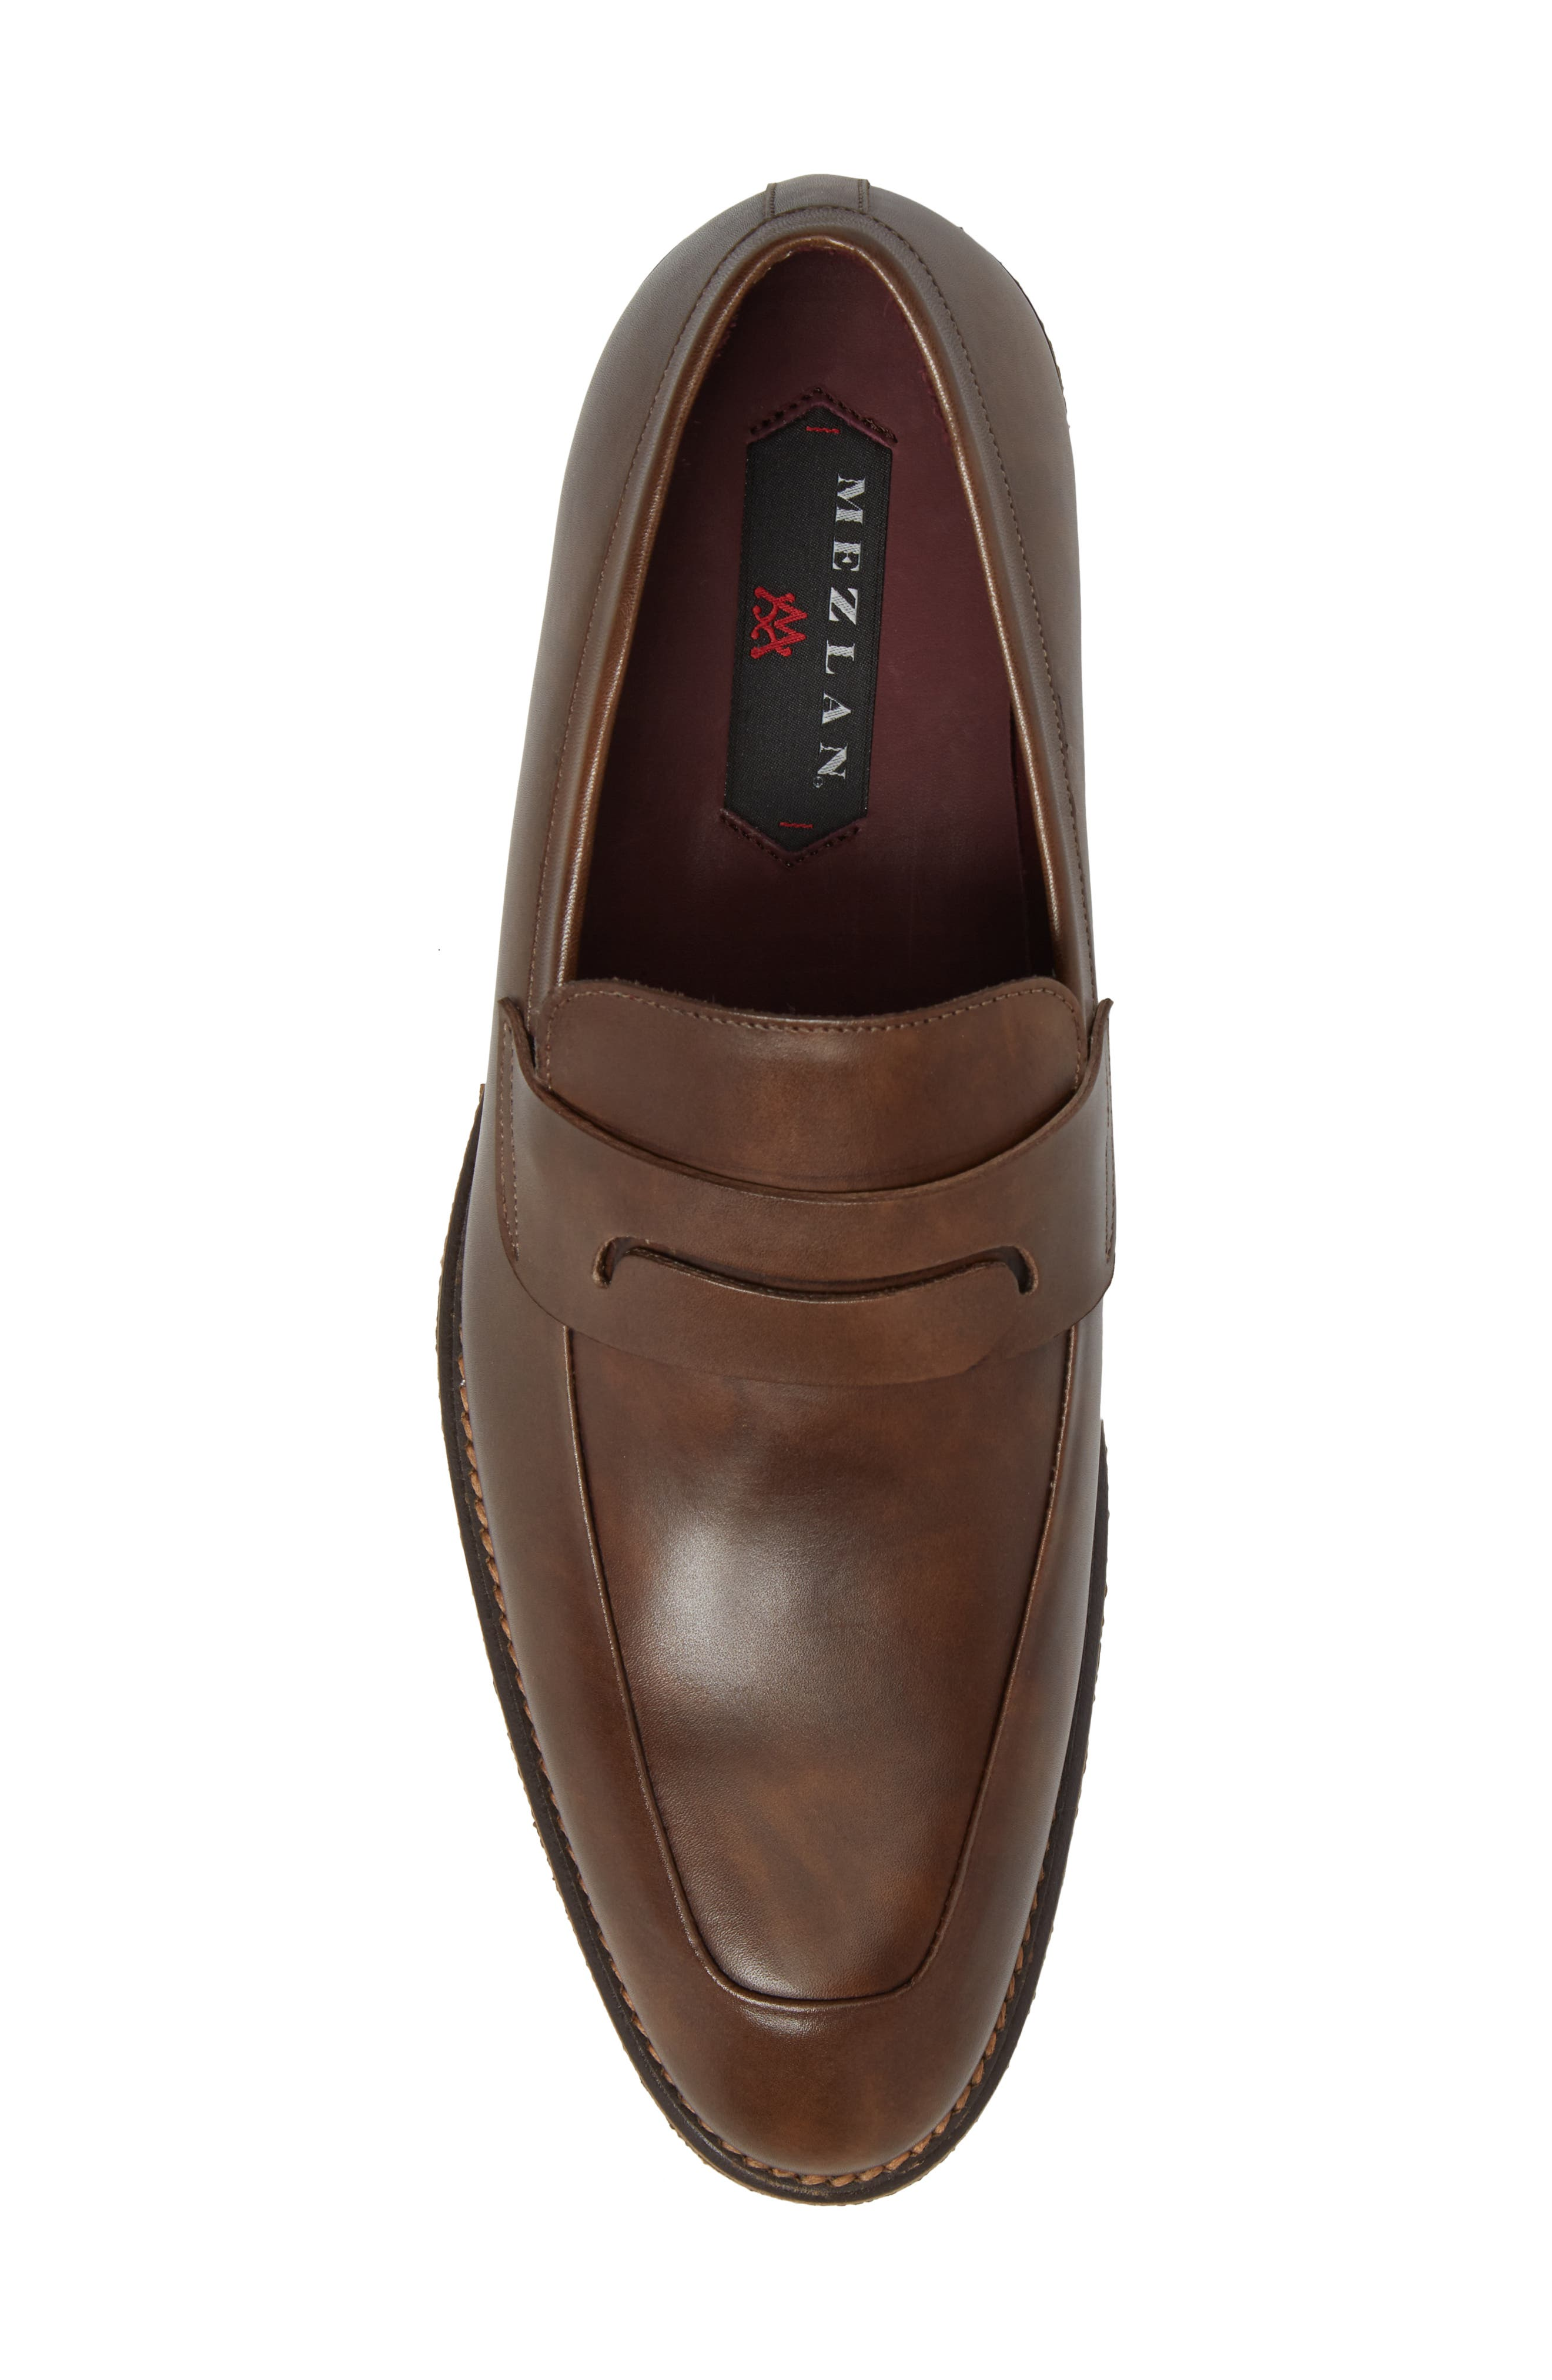 Cantonia Penny Loafer,                             Alternate thumbnail 5, color,                             Taupe Leather